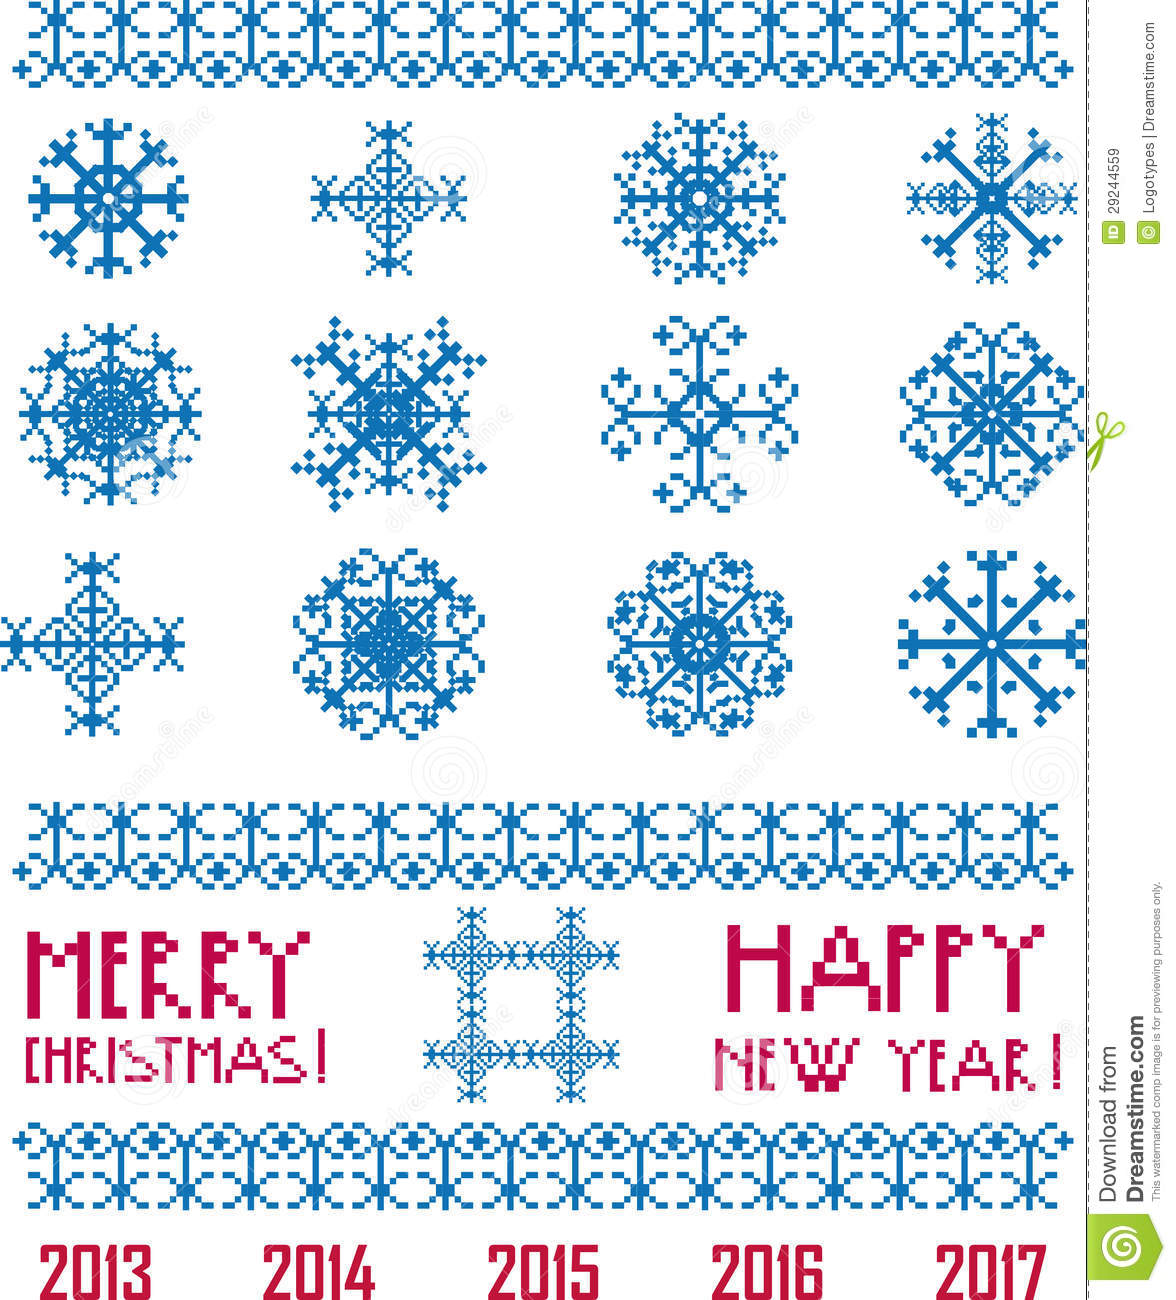 Stock Images  Vector Snowflakes in pixel style Christmas and New Year TDEtLgCe